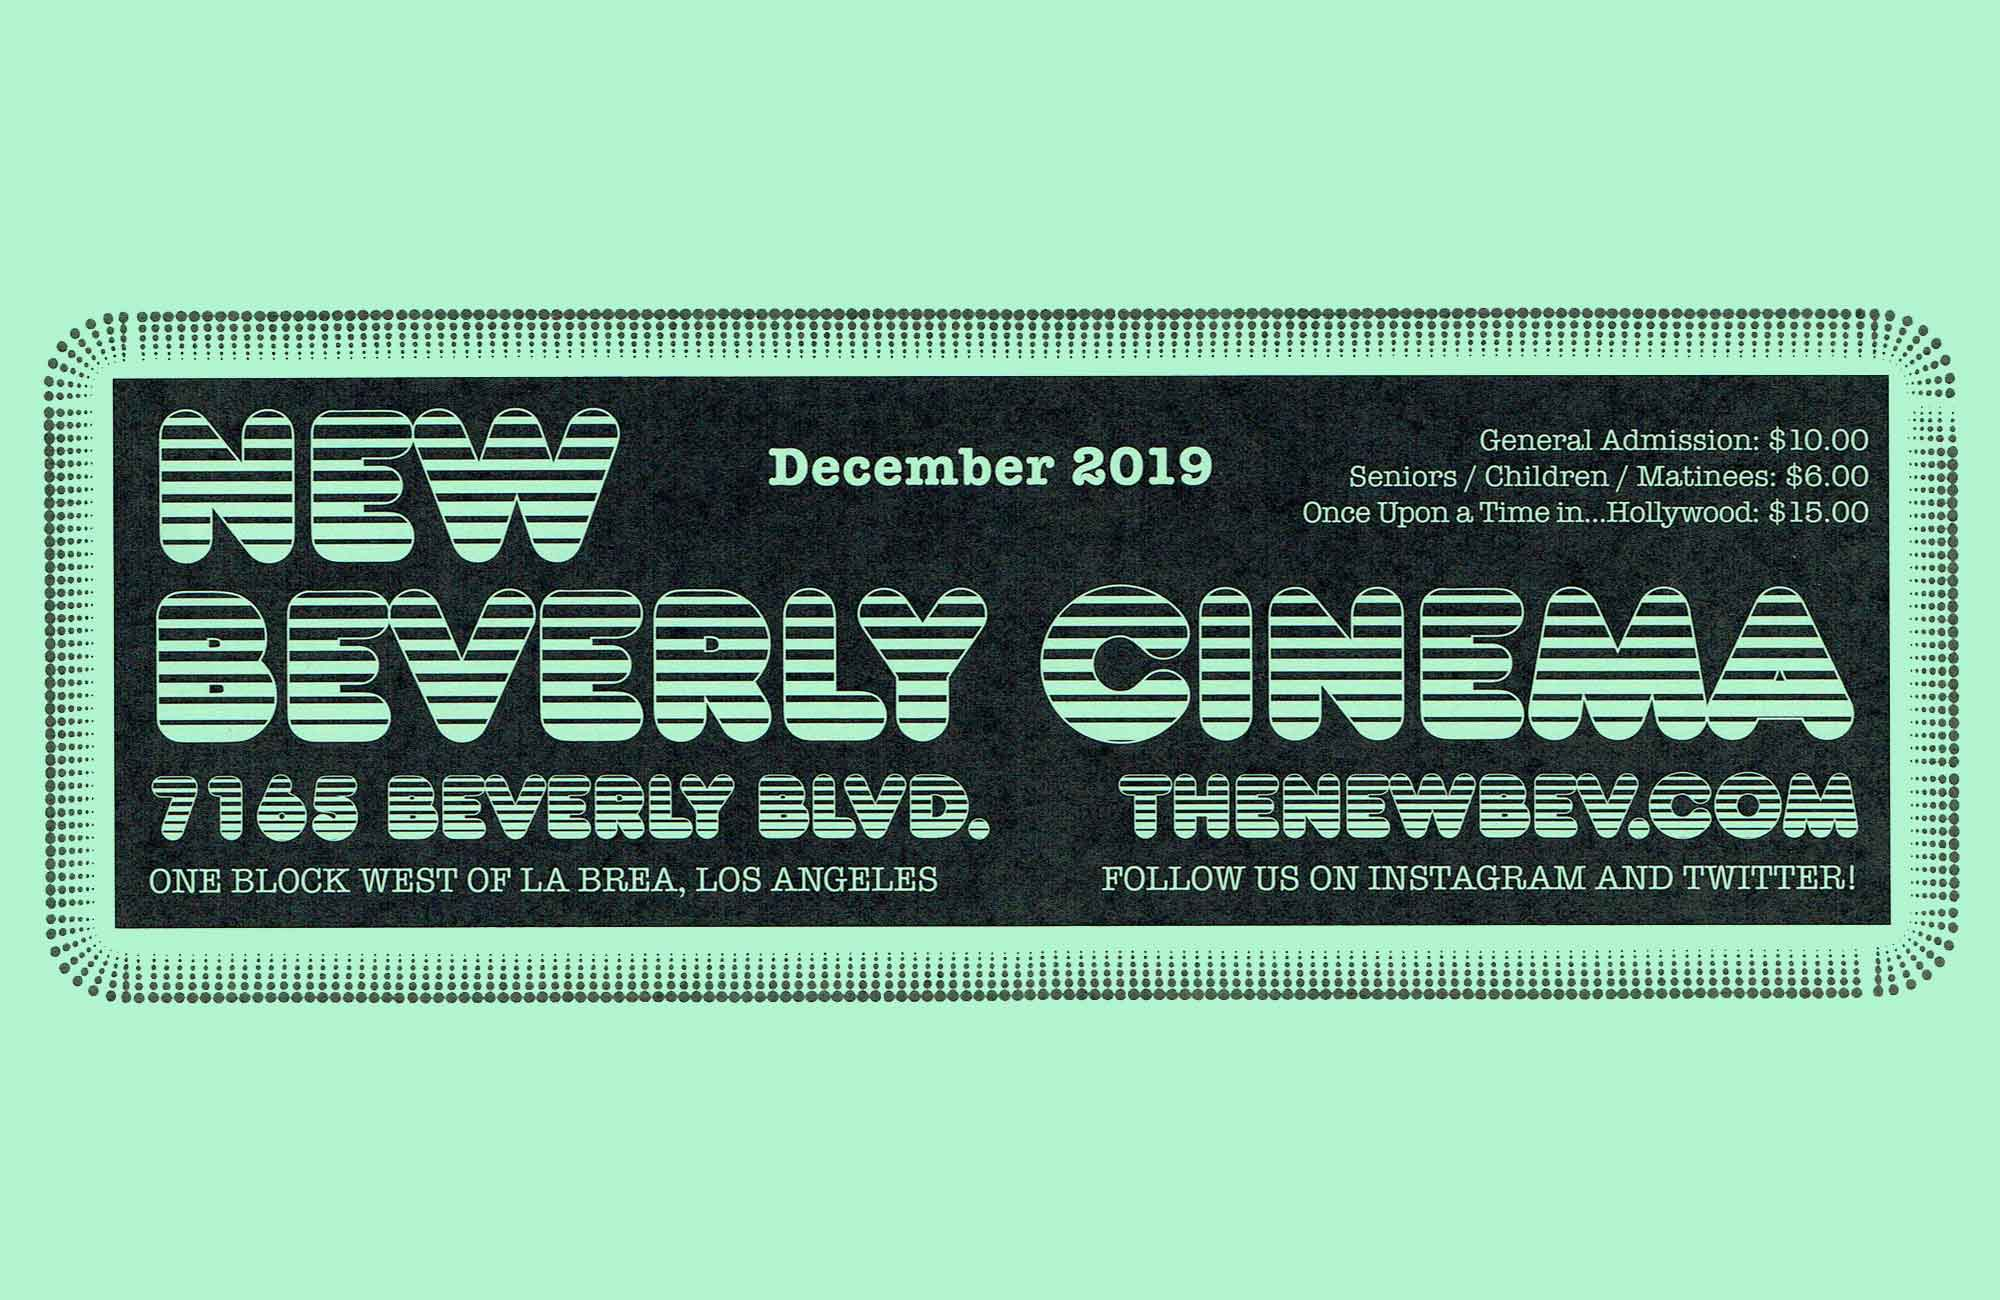 Pure Cinema Podcast: December 2019